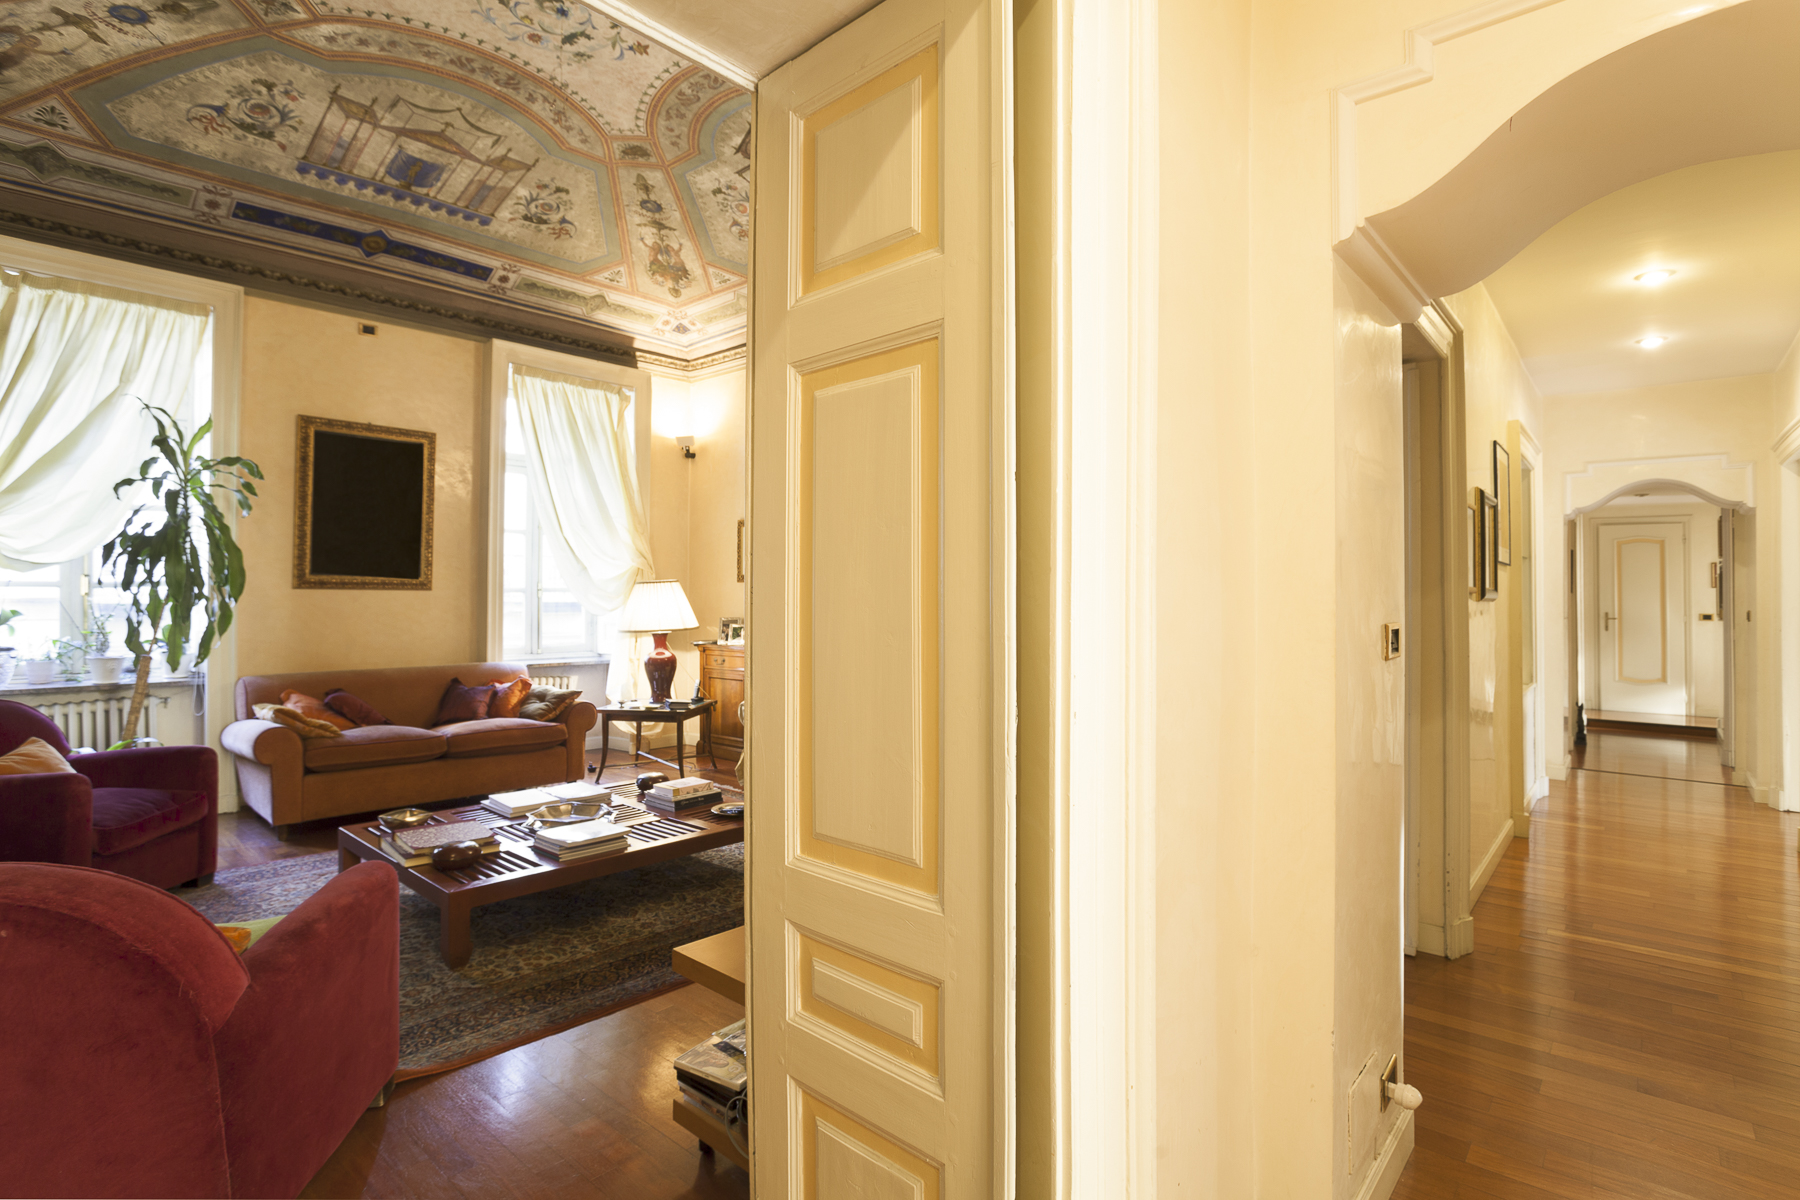 Additional photo for property listing at Elegant apartment in Piazza Vittorio Piazza Vittorio Veneto Torino, Turin 10124 Italia